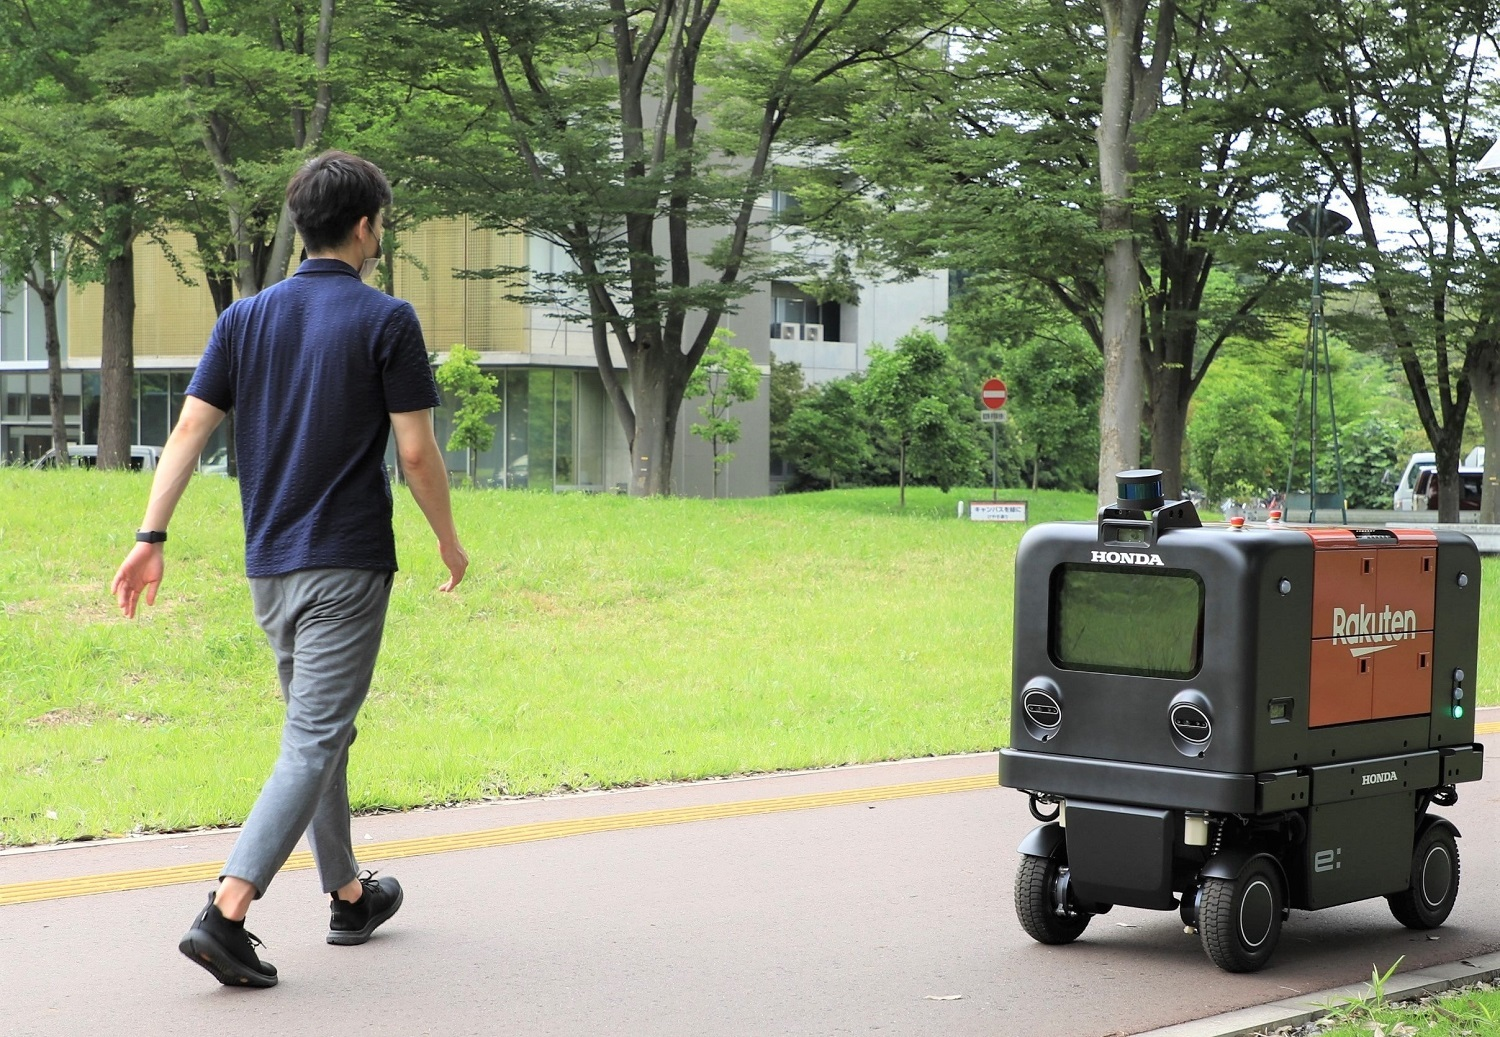 Rakuten's Drone and UGV team has teamed up with legendary Japanese carmaker Honda to run a trial robot delivery on the campus of the Ibaraki-based uni.